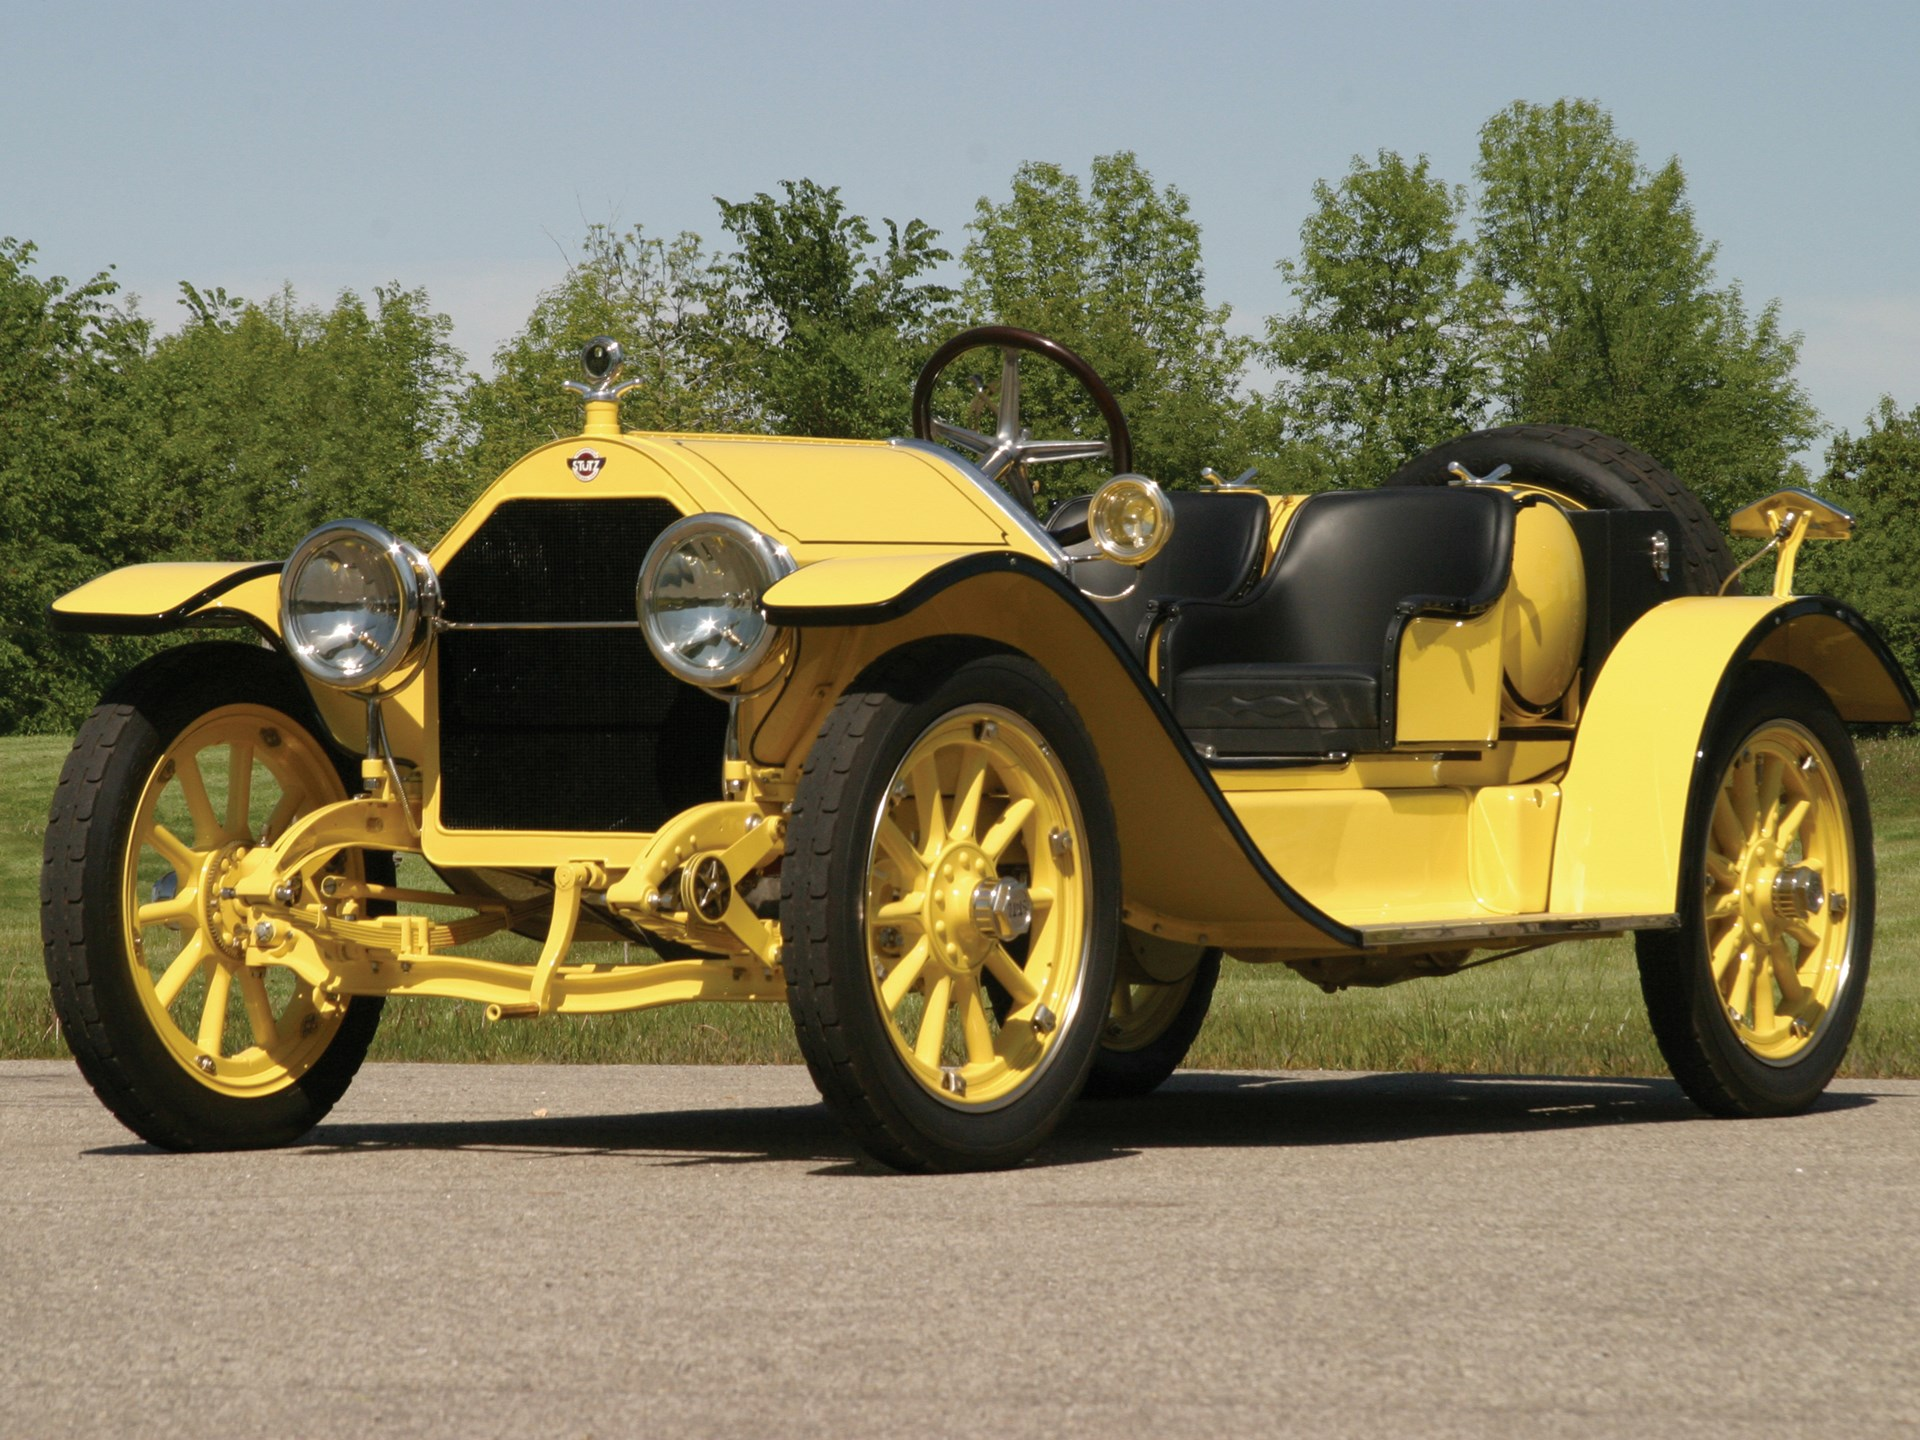 Stutz Bearcat car